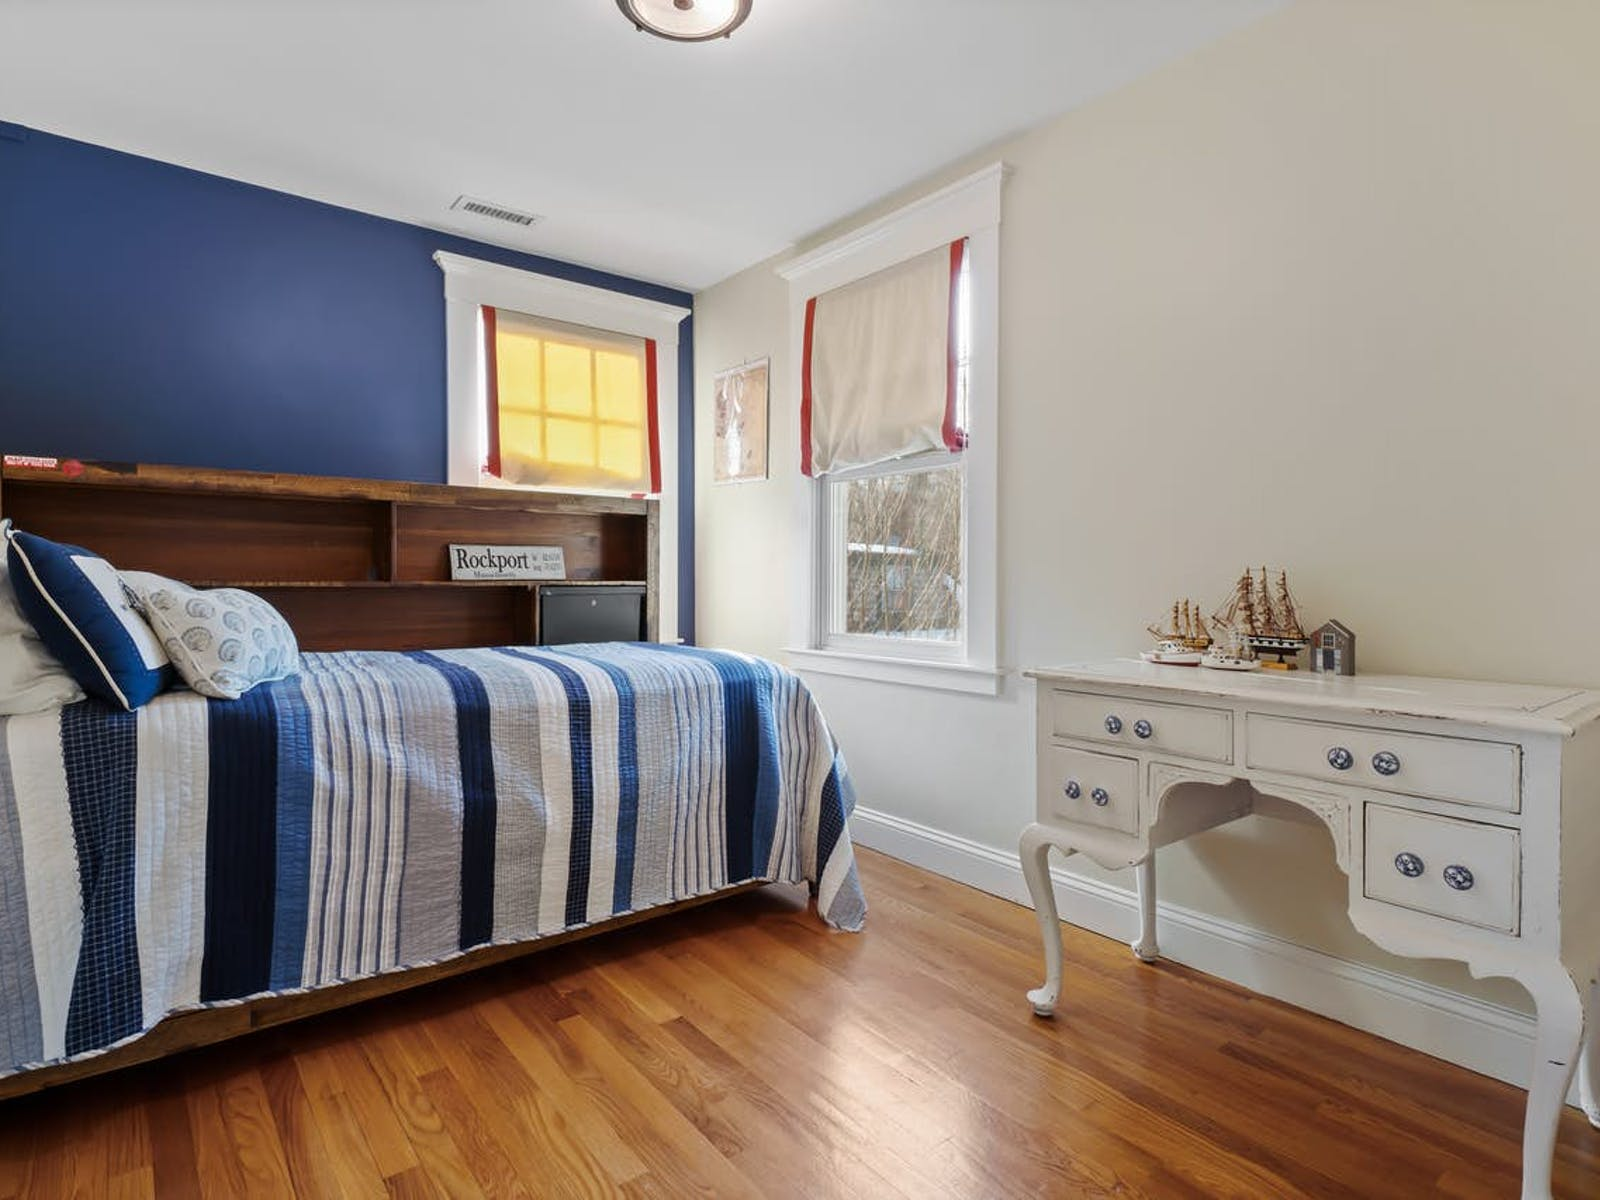 Vacation rental in Rockport, MA